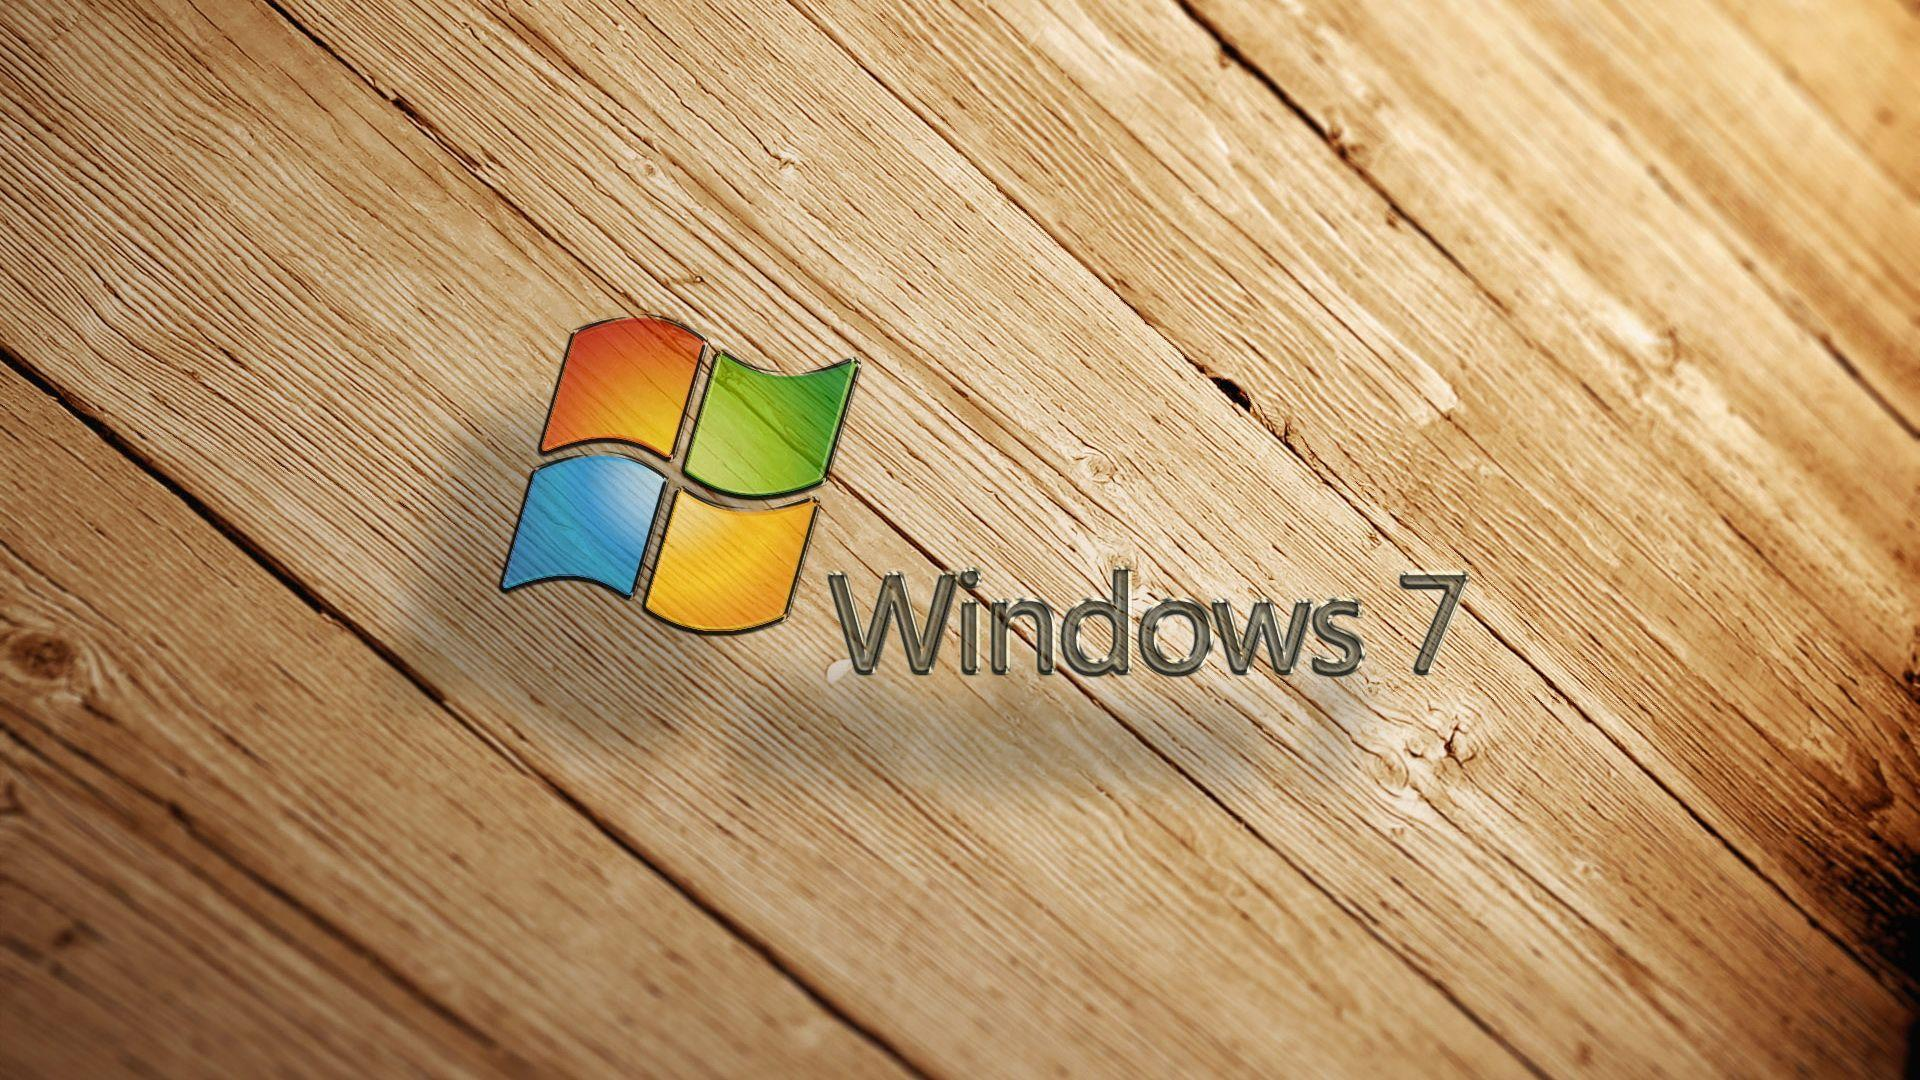 Wallpapers For > Full Hd Wallpapers For Windows 7 1920x1080